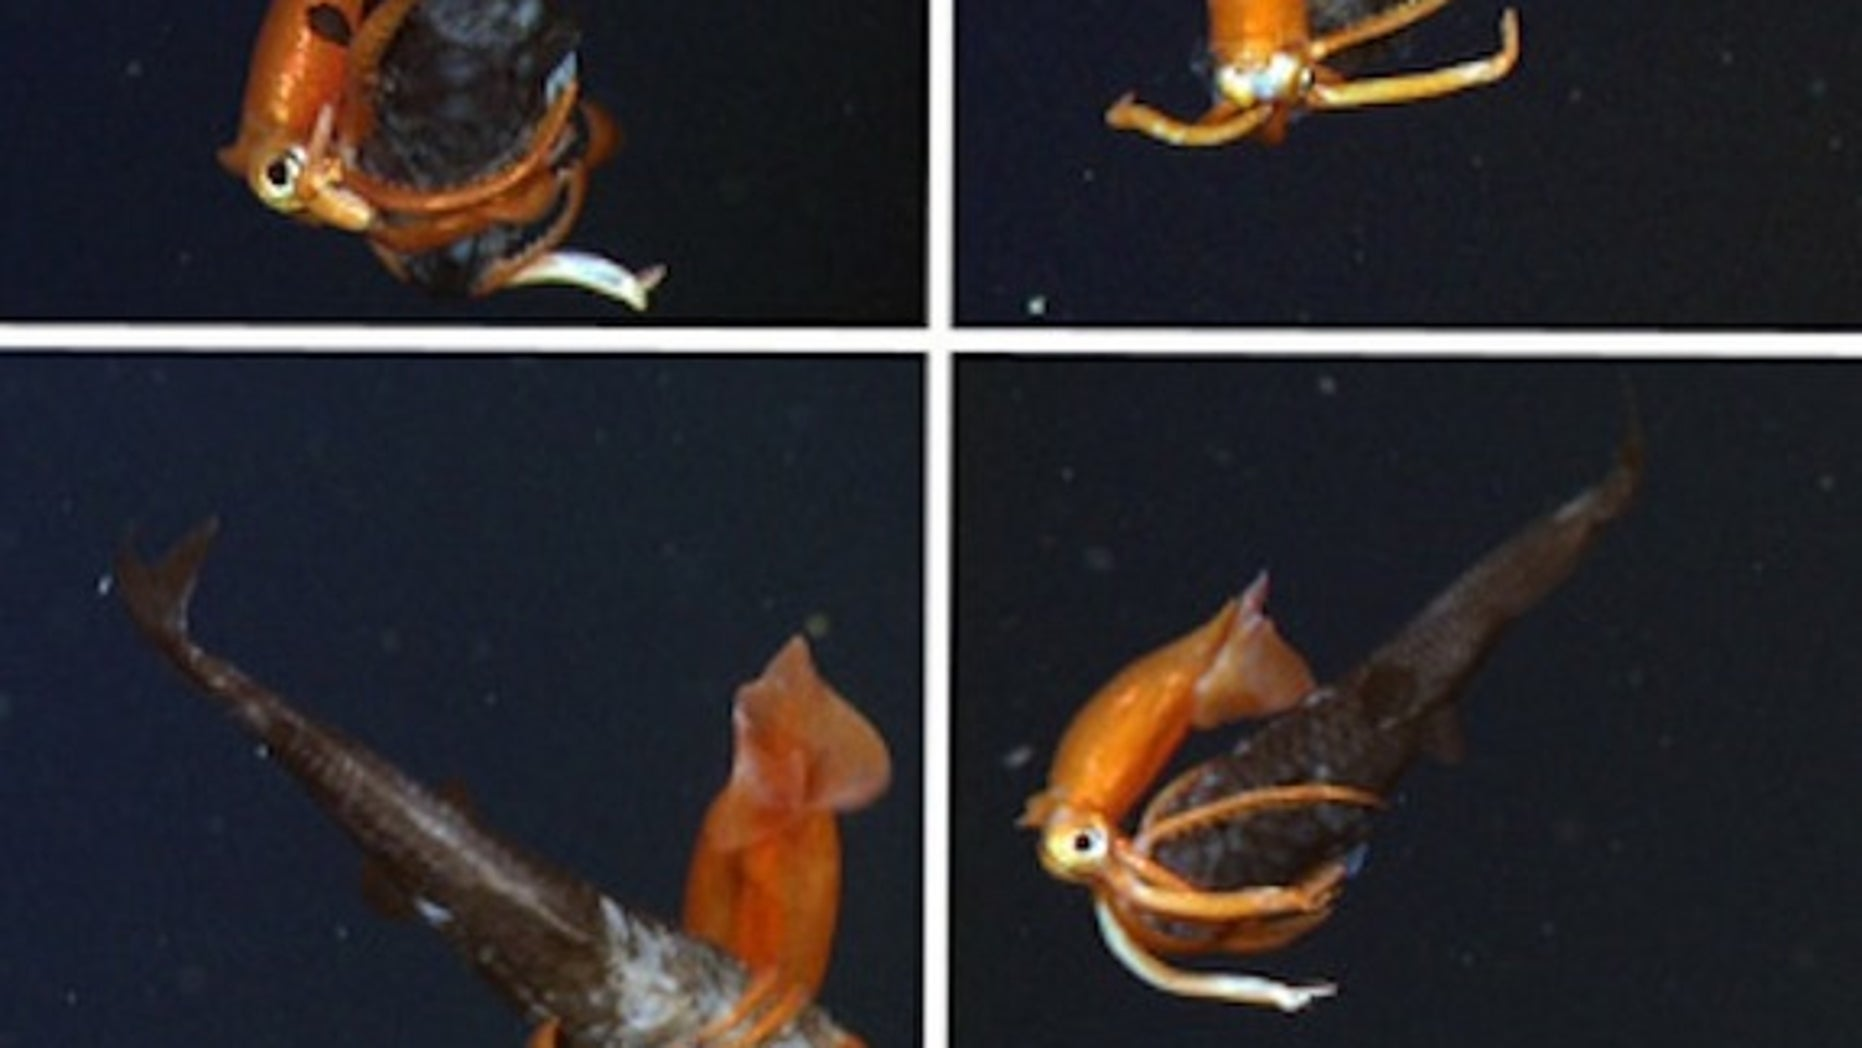 A squid and owlfish battle in Monterey Bay, as seen by MBARI's remotely-operated vehicle on Nov. 11, 2013.